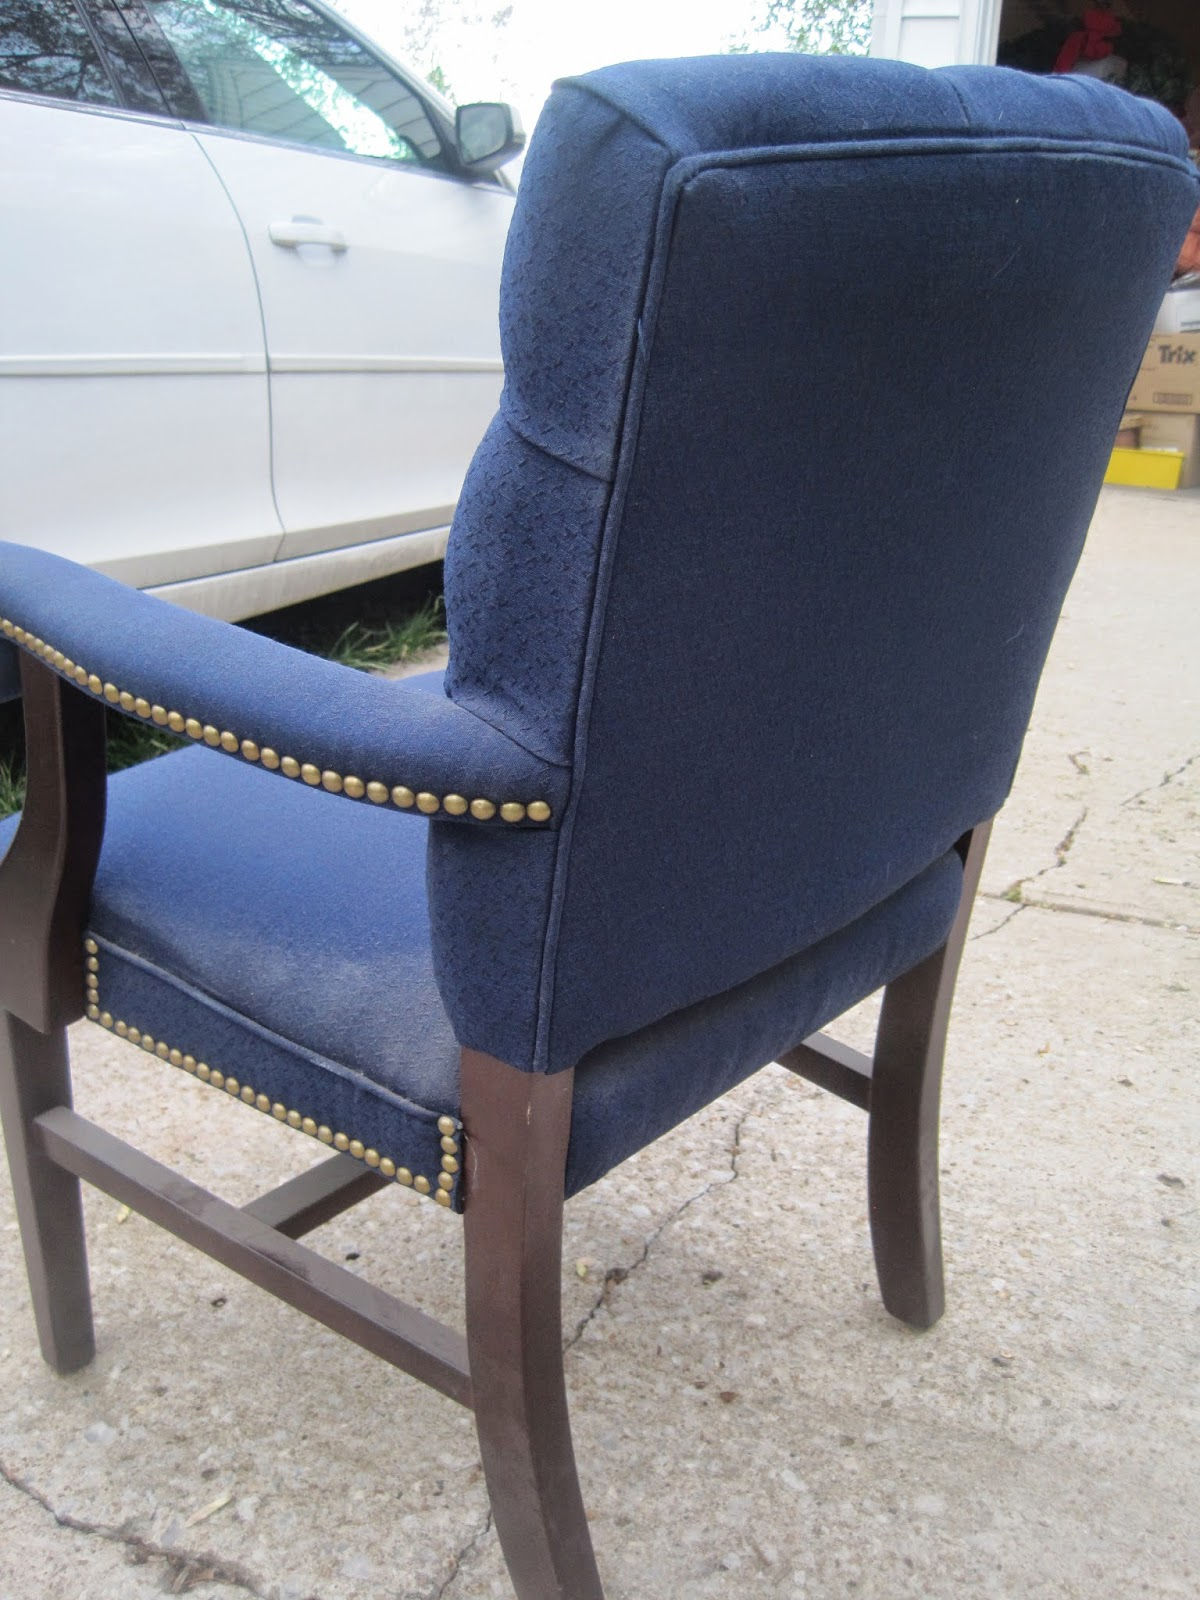 tufted blue chair best potty for boy decorated chaos with nail head trim